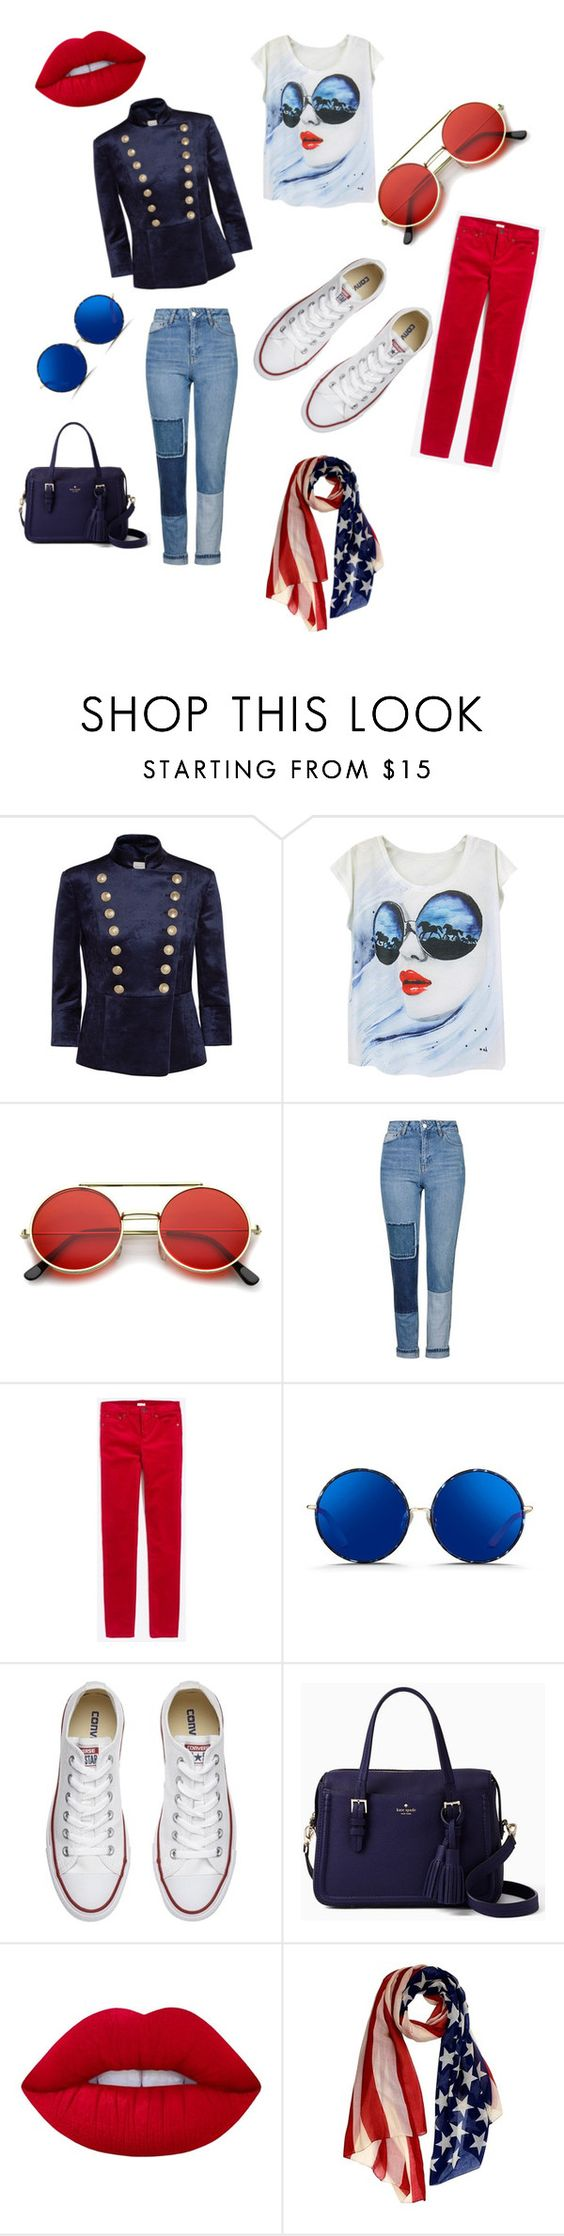 """""""USA  - Made by: Tamara Hussein"""" by tamarahussein ❤ liked on Polyvore featuring Pierre Balmain, ZeroUV, Topshop, J.Crew, Matthew Williamson, Converse, Kate Spade and Lime Crime"""